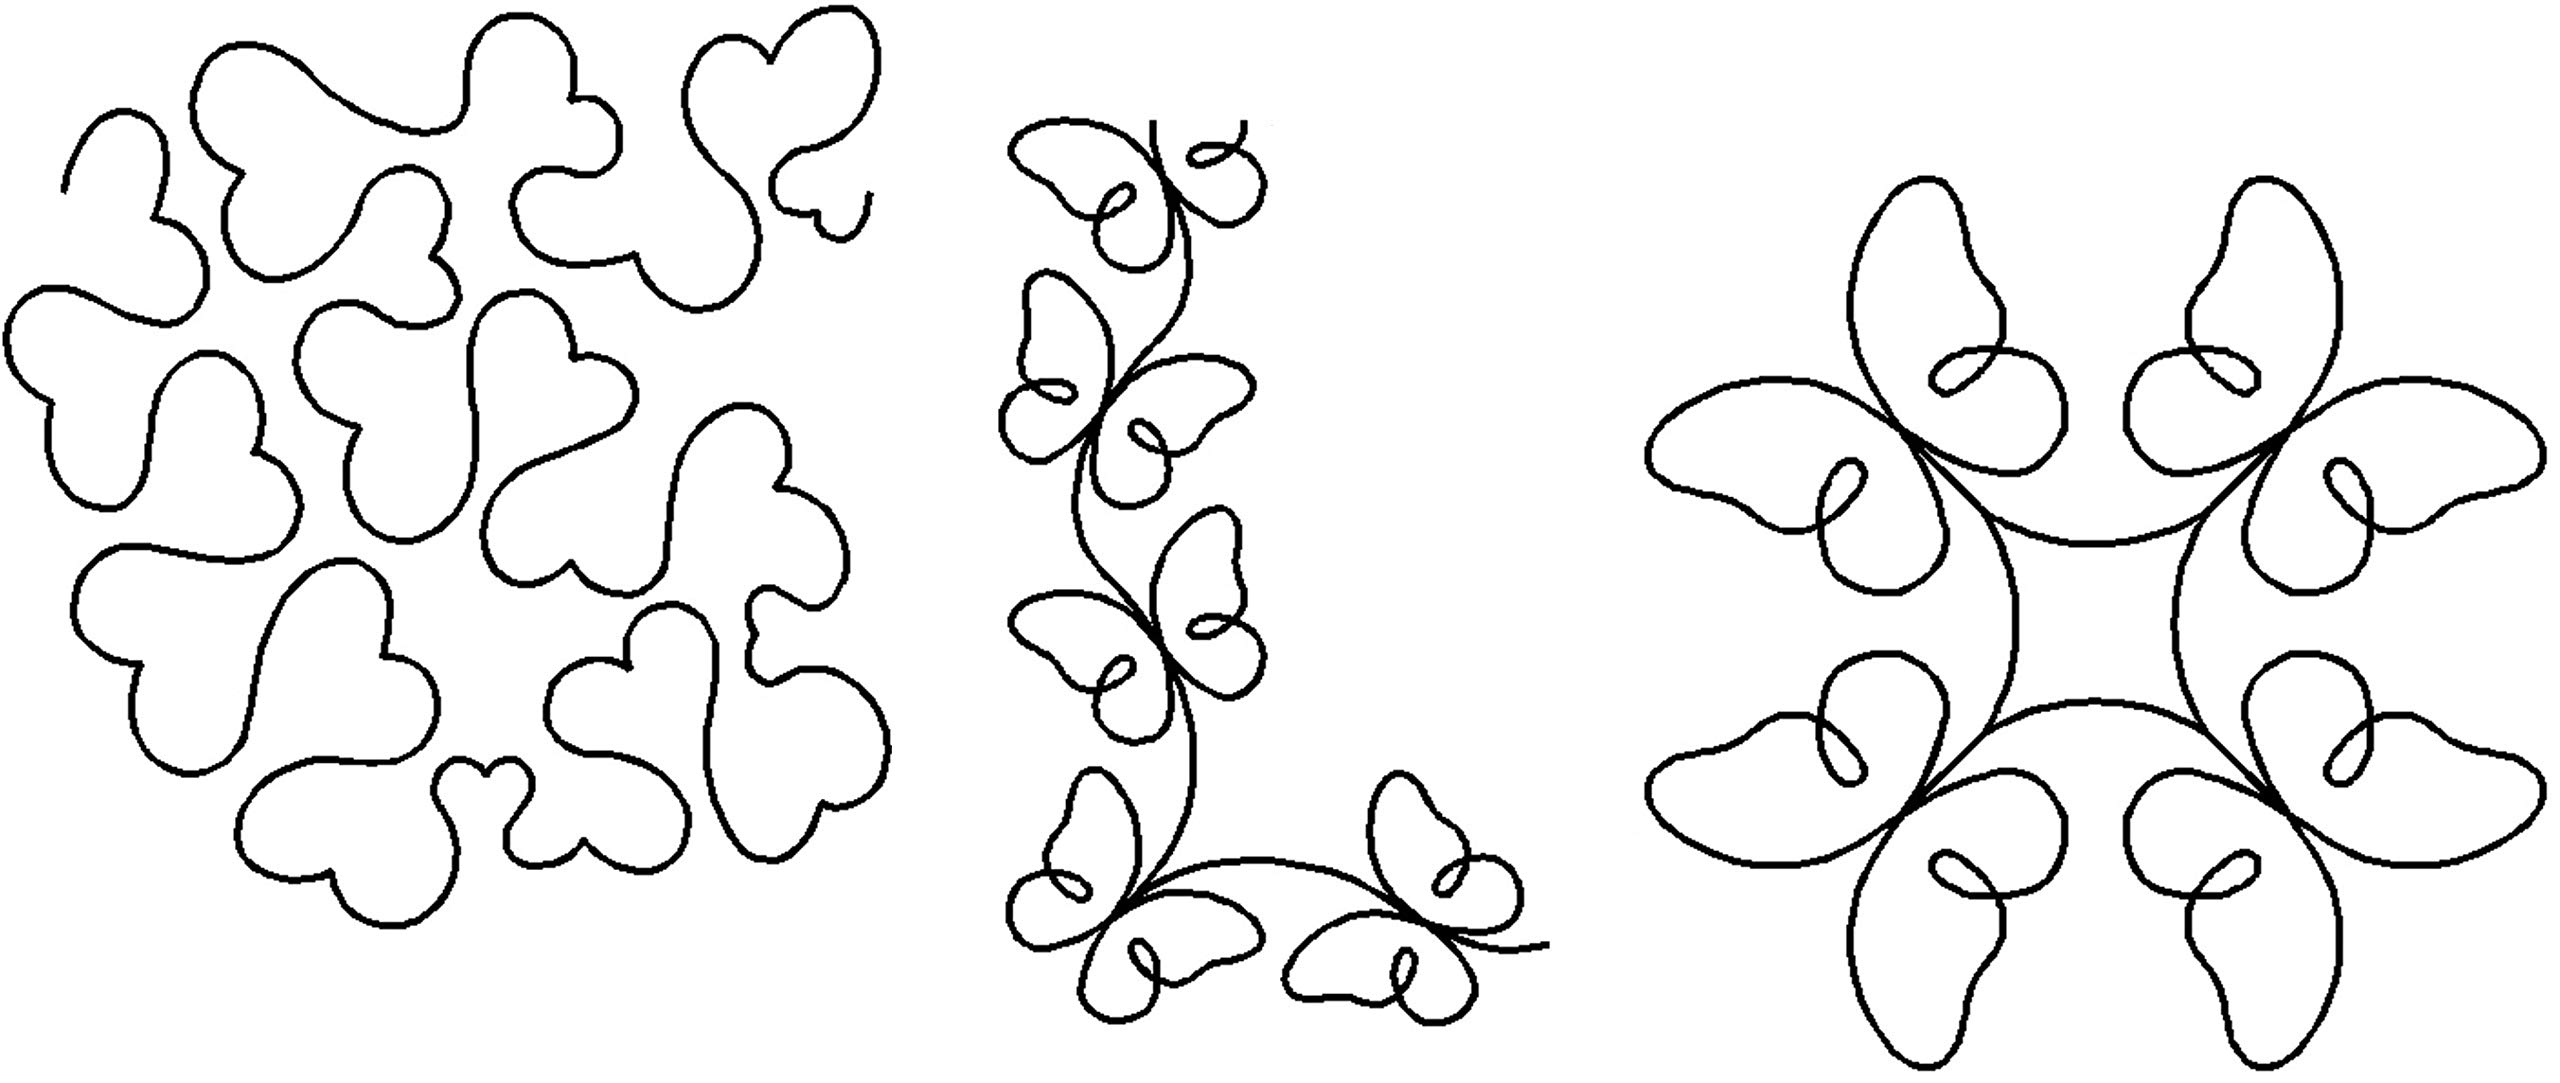 Quilting Creations Stencils for Machine and Hand Quilting | Set of 3 Quilt Plastic Stencils for Borders, Background and Block Patterns | Heart Stipple, Butterfly Border, Butterfly Block by Generic